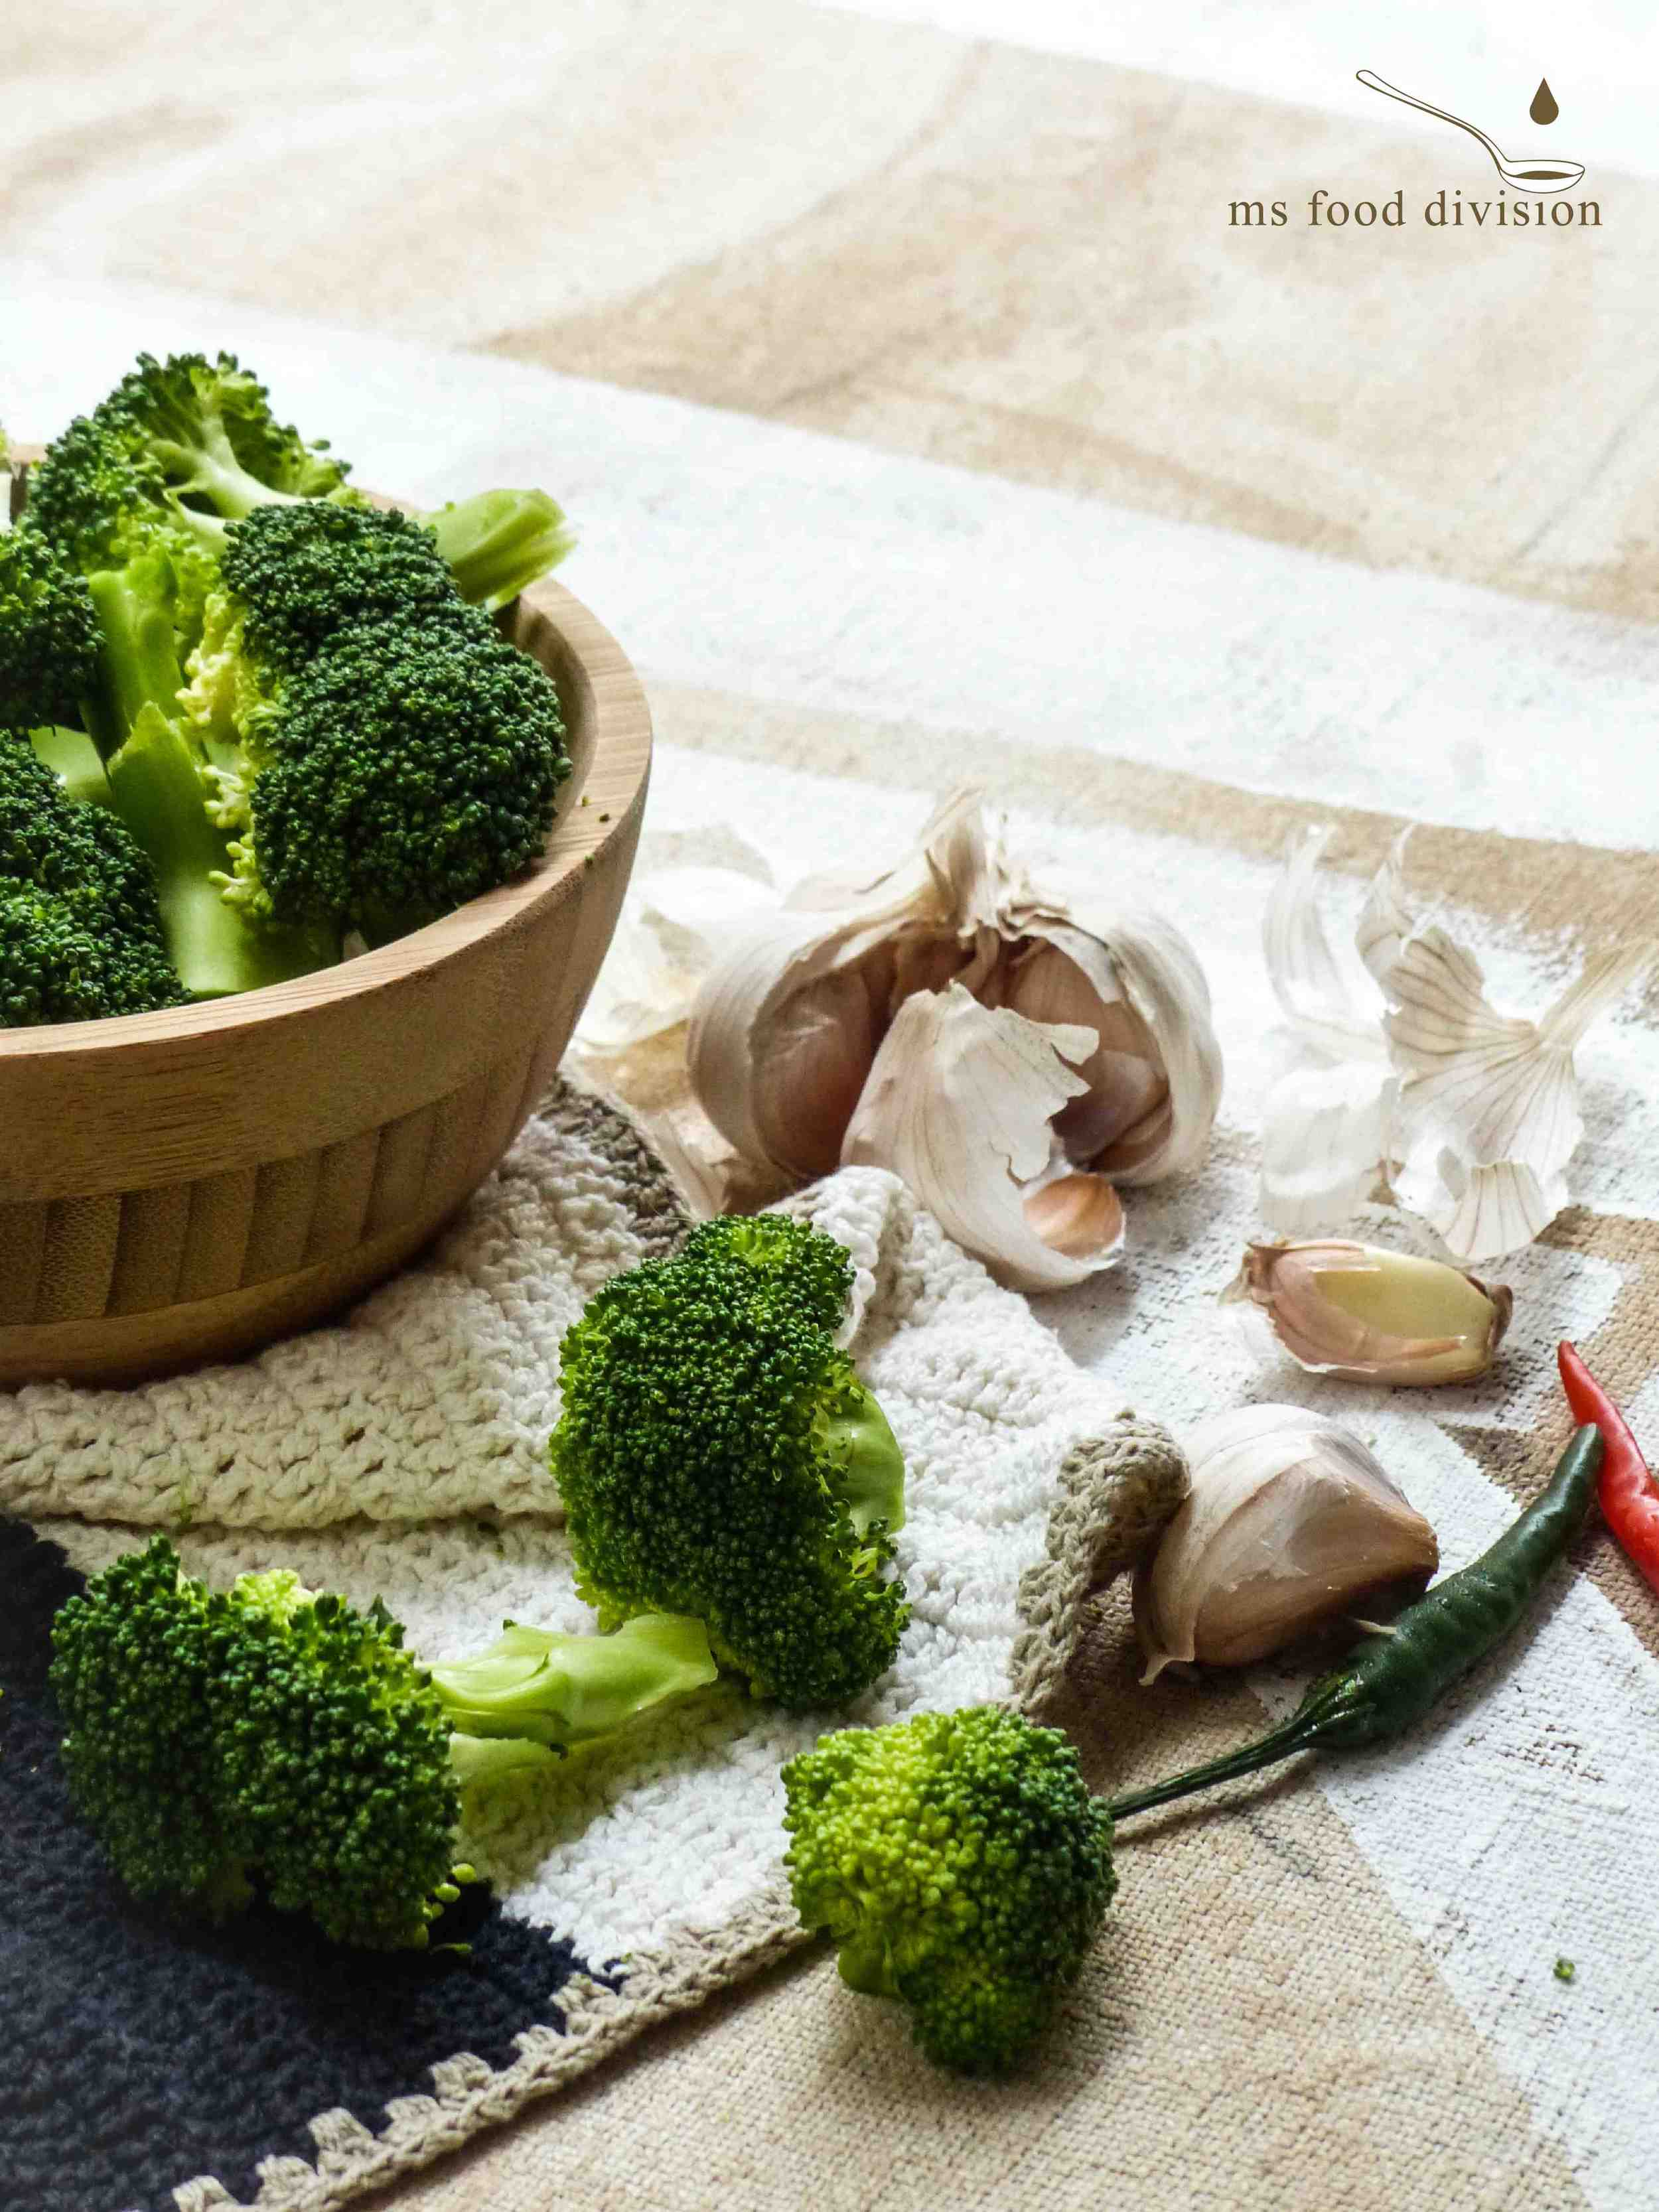 The three essential ingredients are broccoli, garlic, and chili.  With just those three super ingredients, we can whip up an effortless and delicious meal in no time.